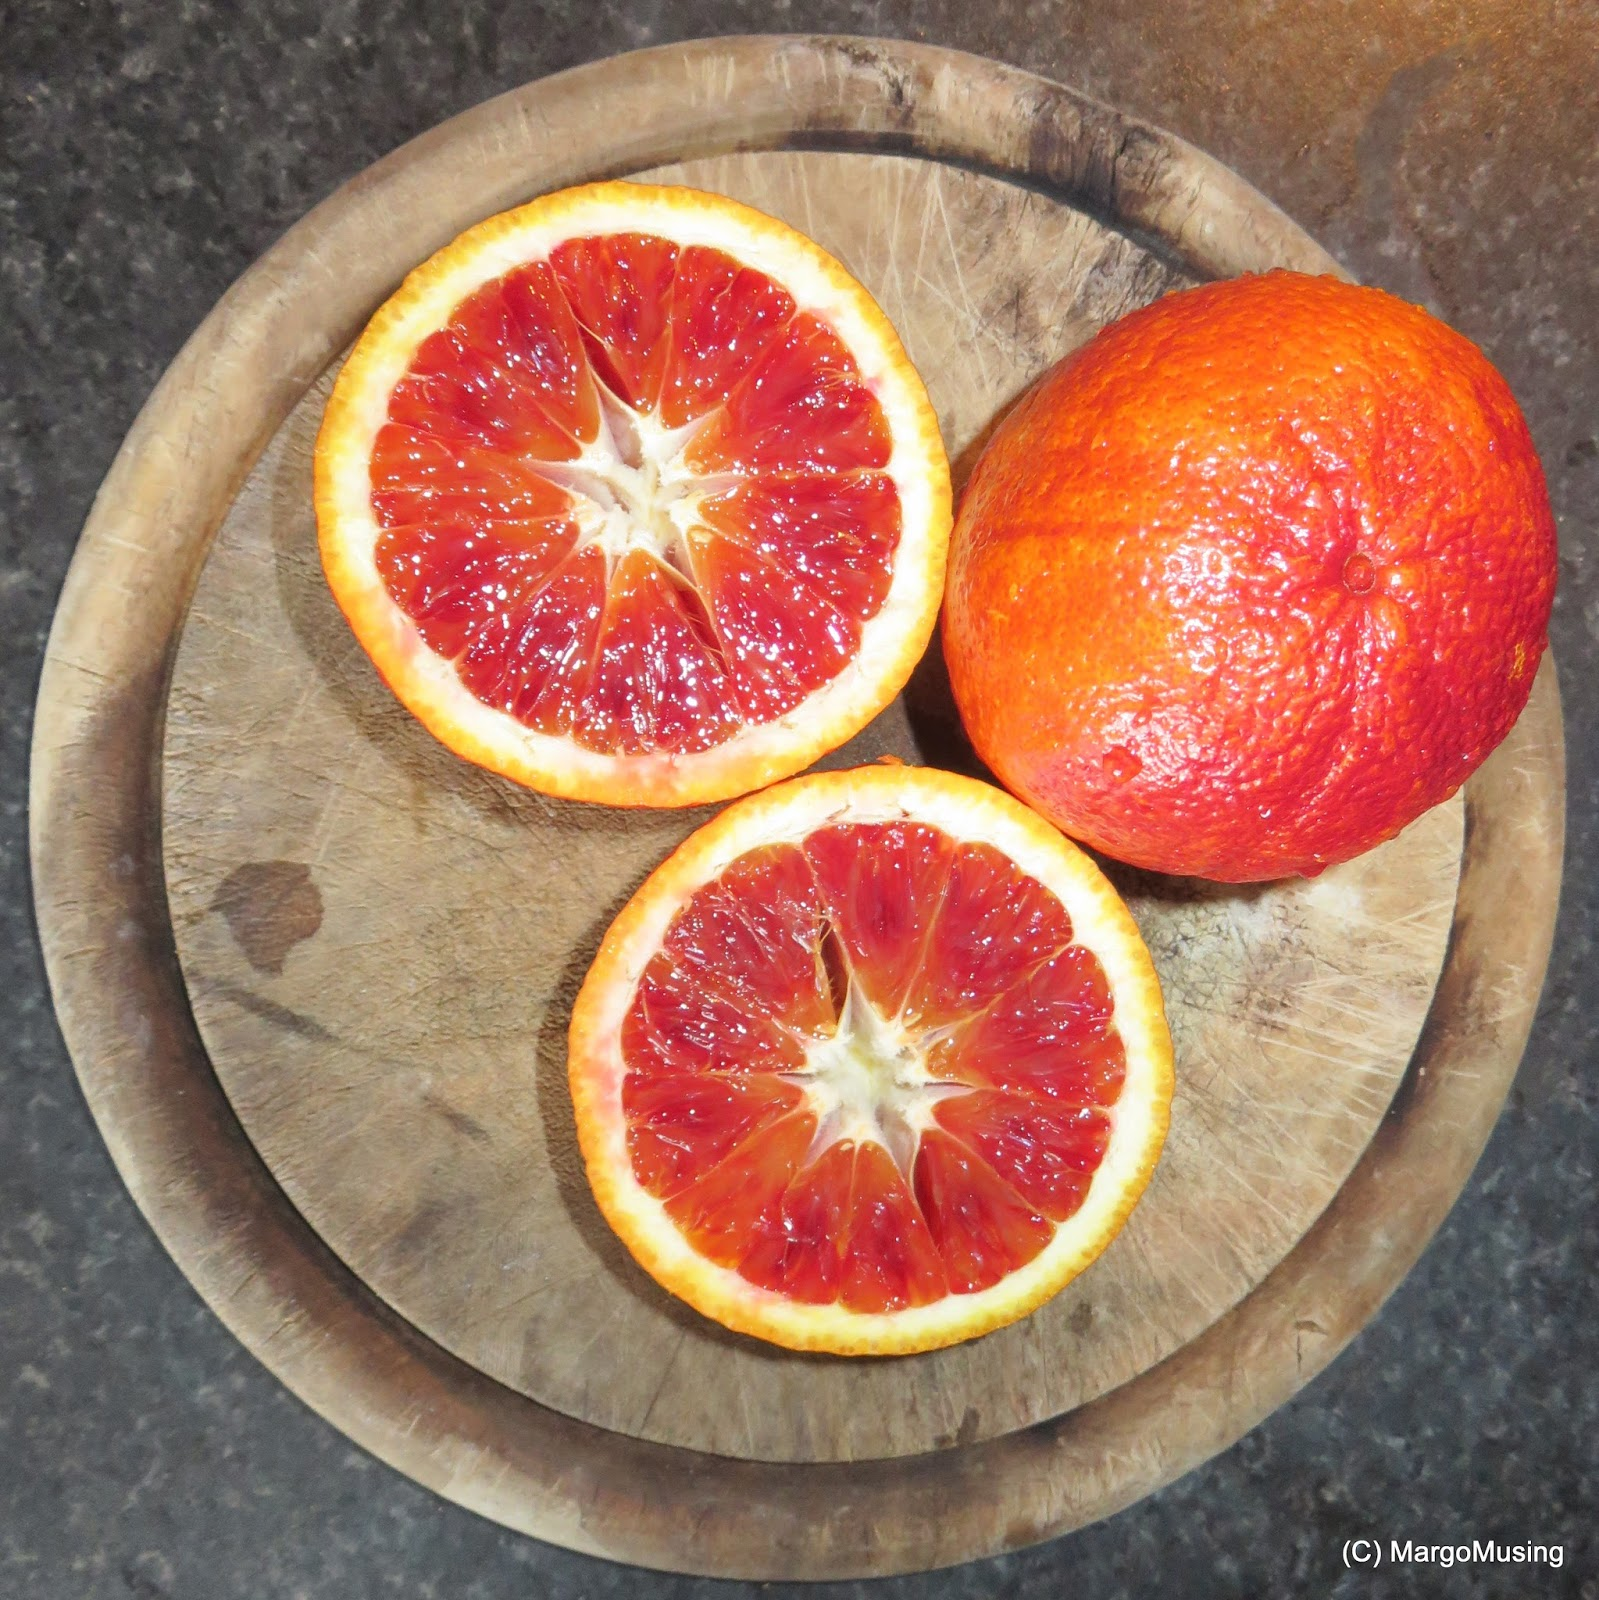 It's not as easy as you might think to track down blood oranges, but I ...